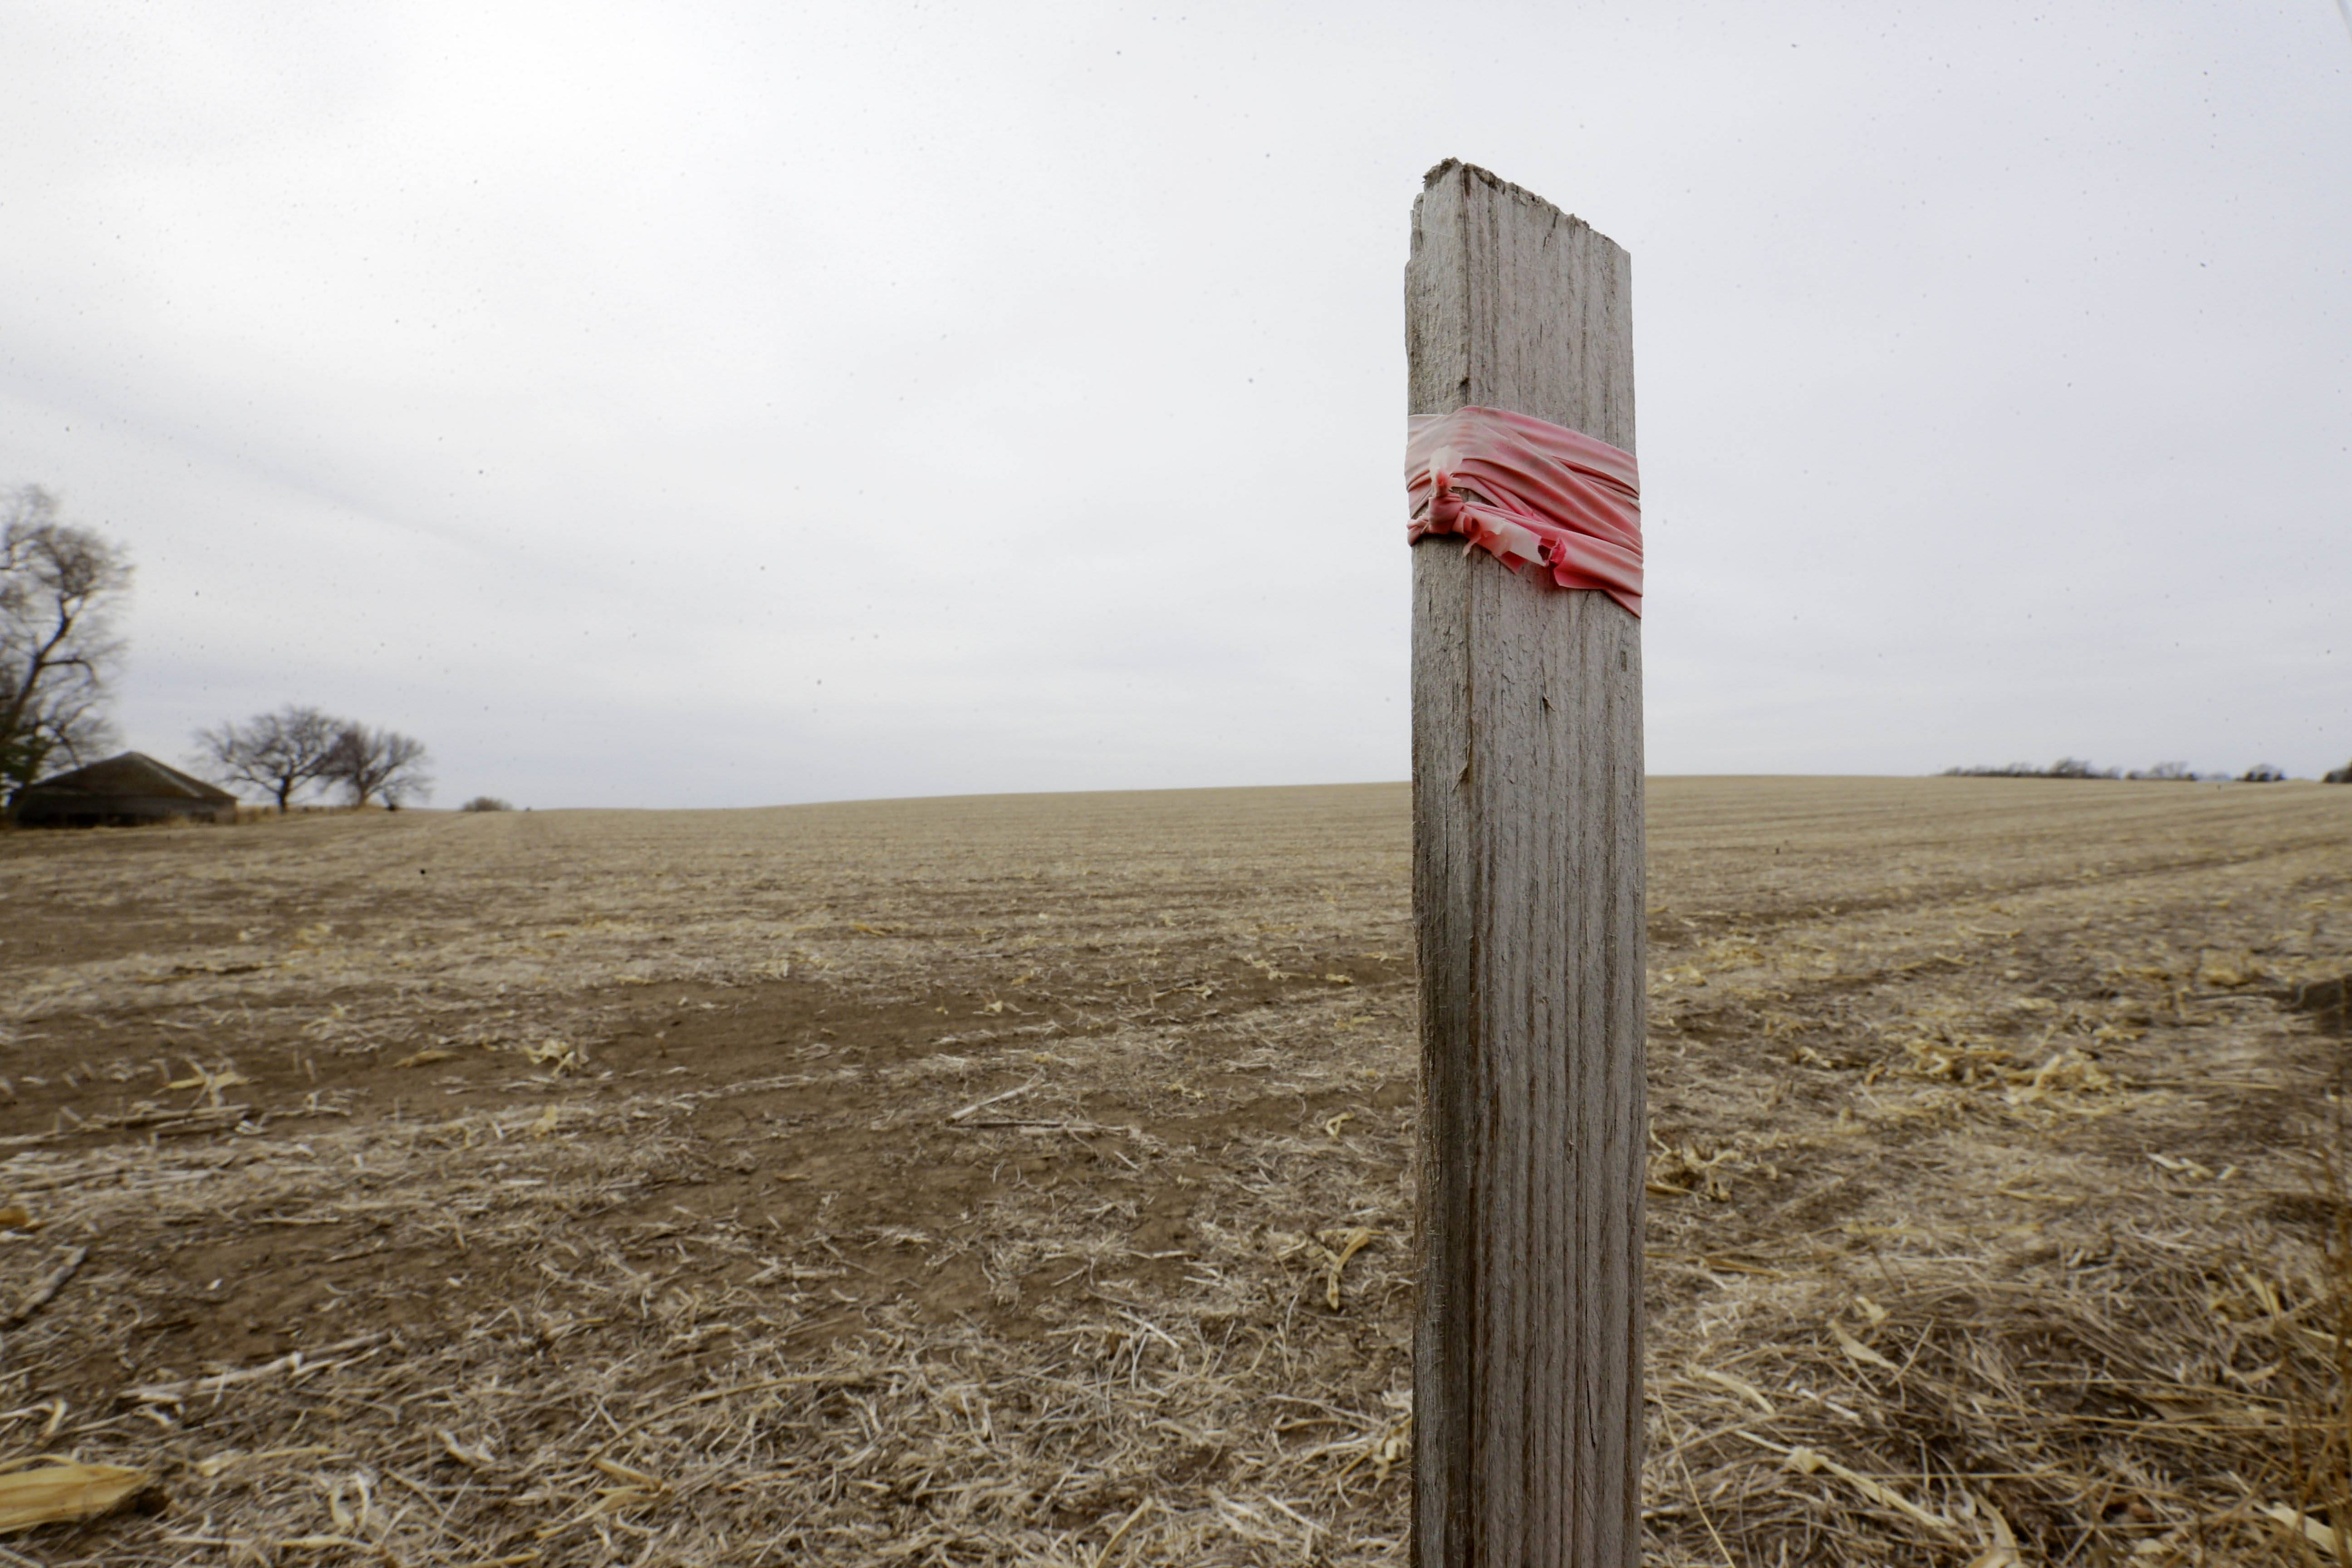 This March 17, 2014, photo shows a stake in the ground that marks the route of the Keystone XL pipeline in Tilden, Neb. The much-debated Keystone XL pipeline could produce four times more global warming pollution than the State Department has calculated, according to scientists at a Swedish research facility.